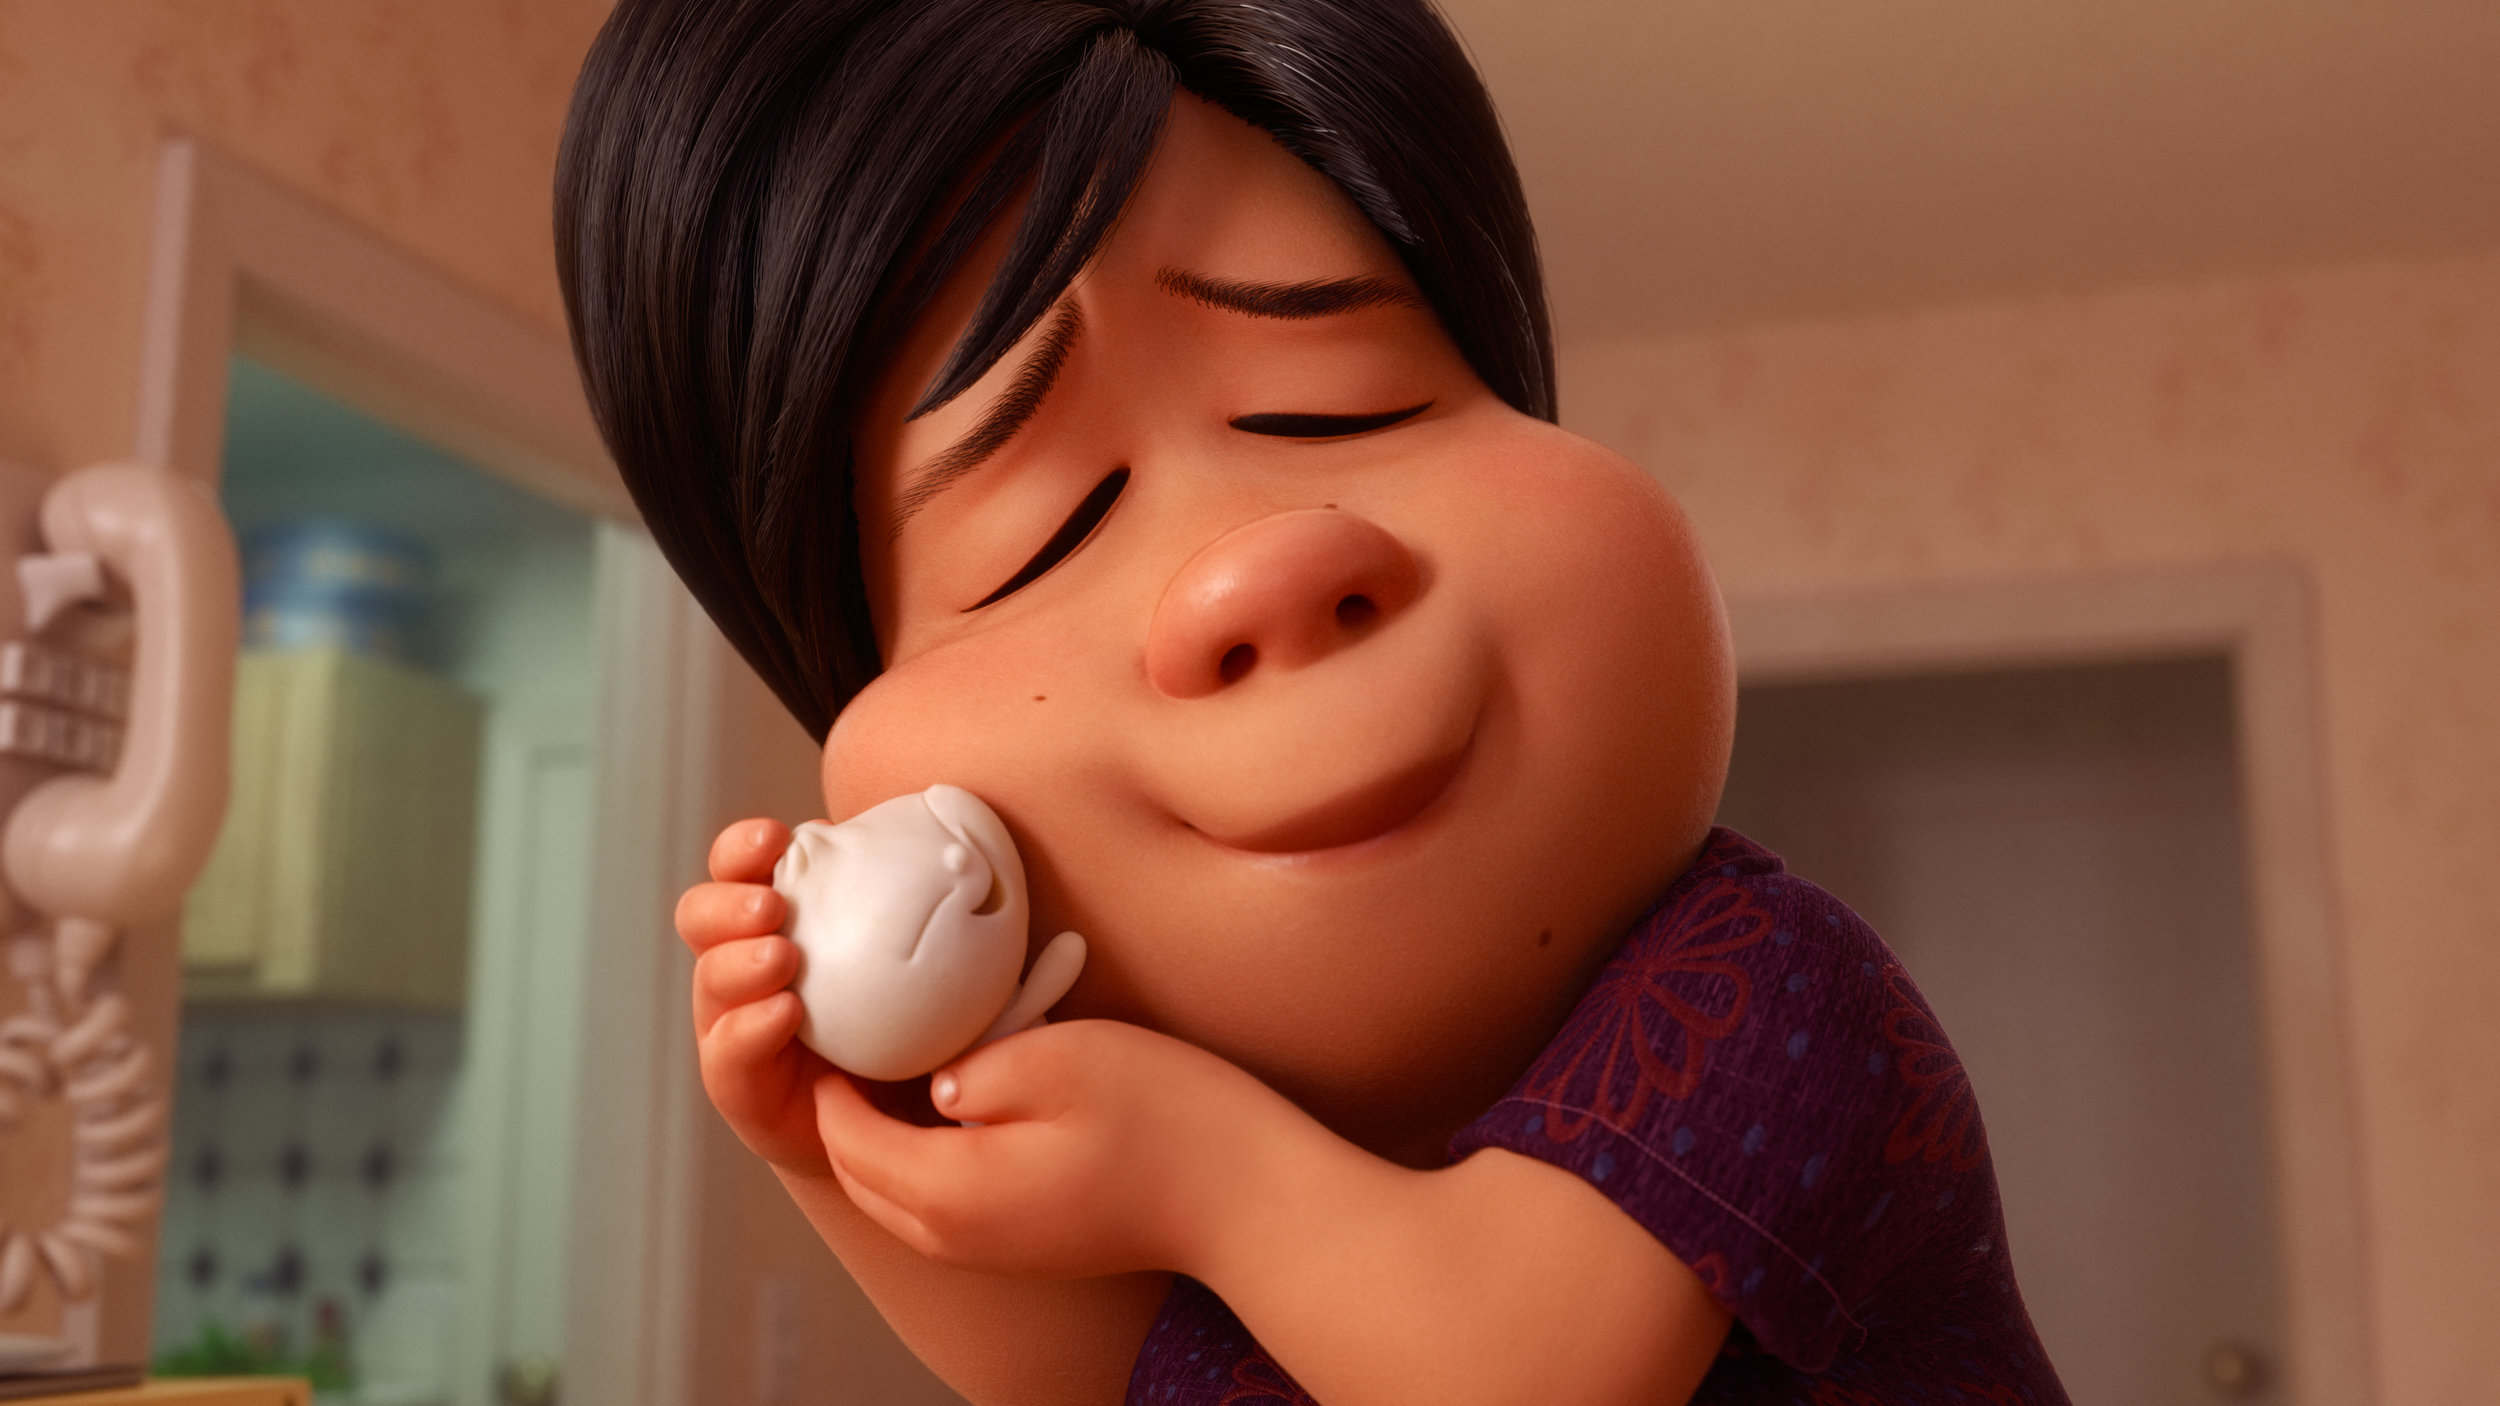 Kids can be so kneady. A scene from Pixar's Bao.